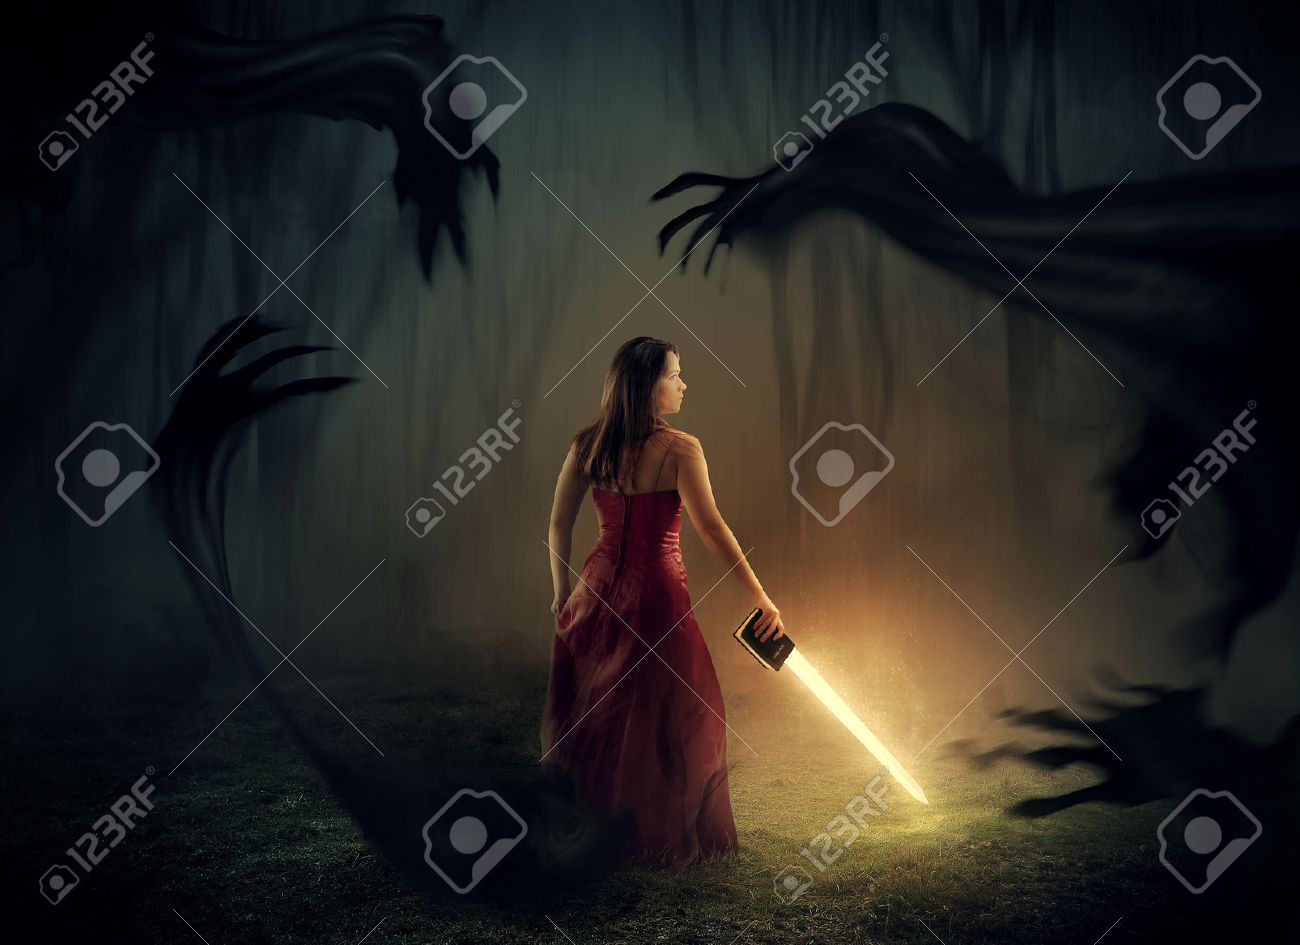 A woman holds a sword out of a Bible with dark demons around. - 36874144